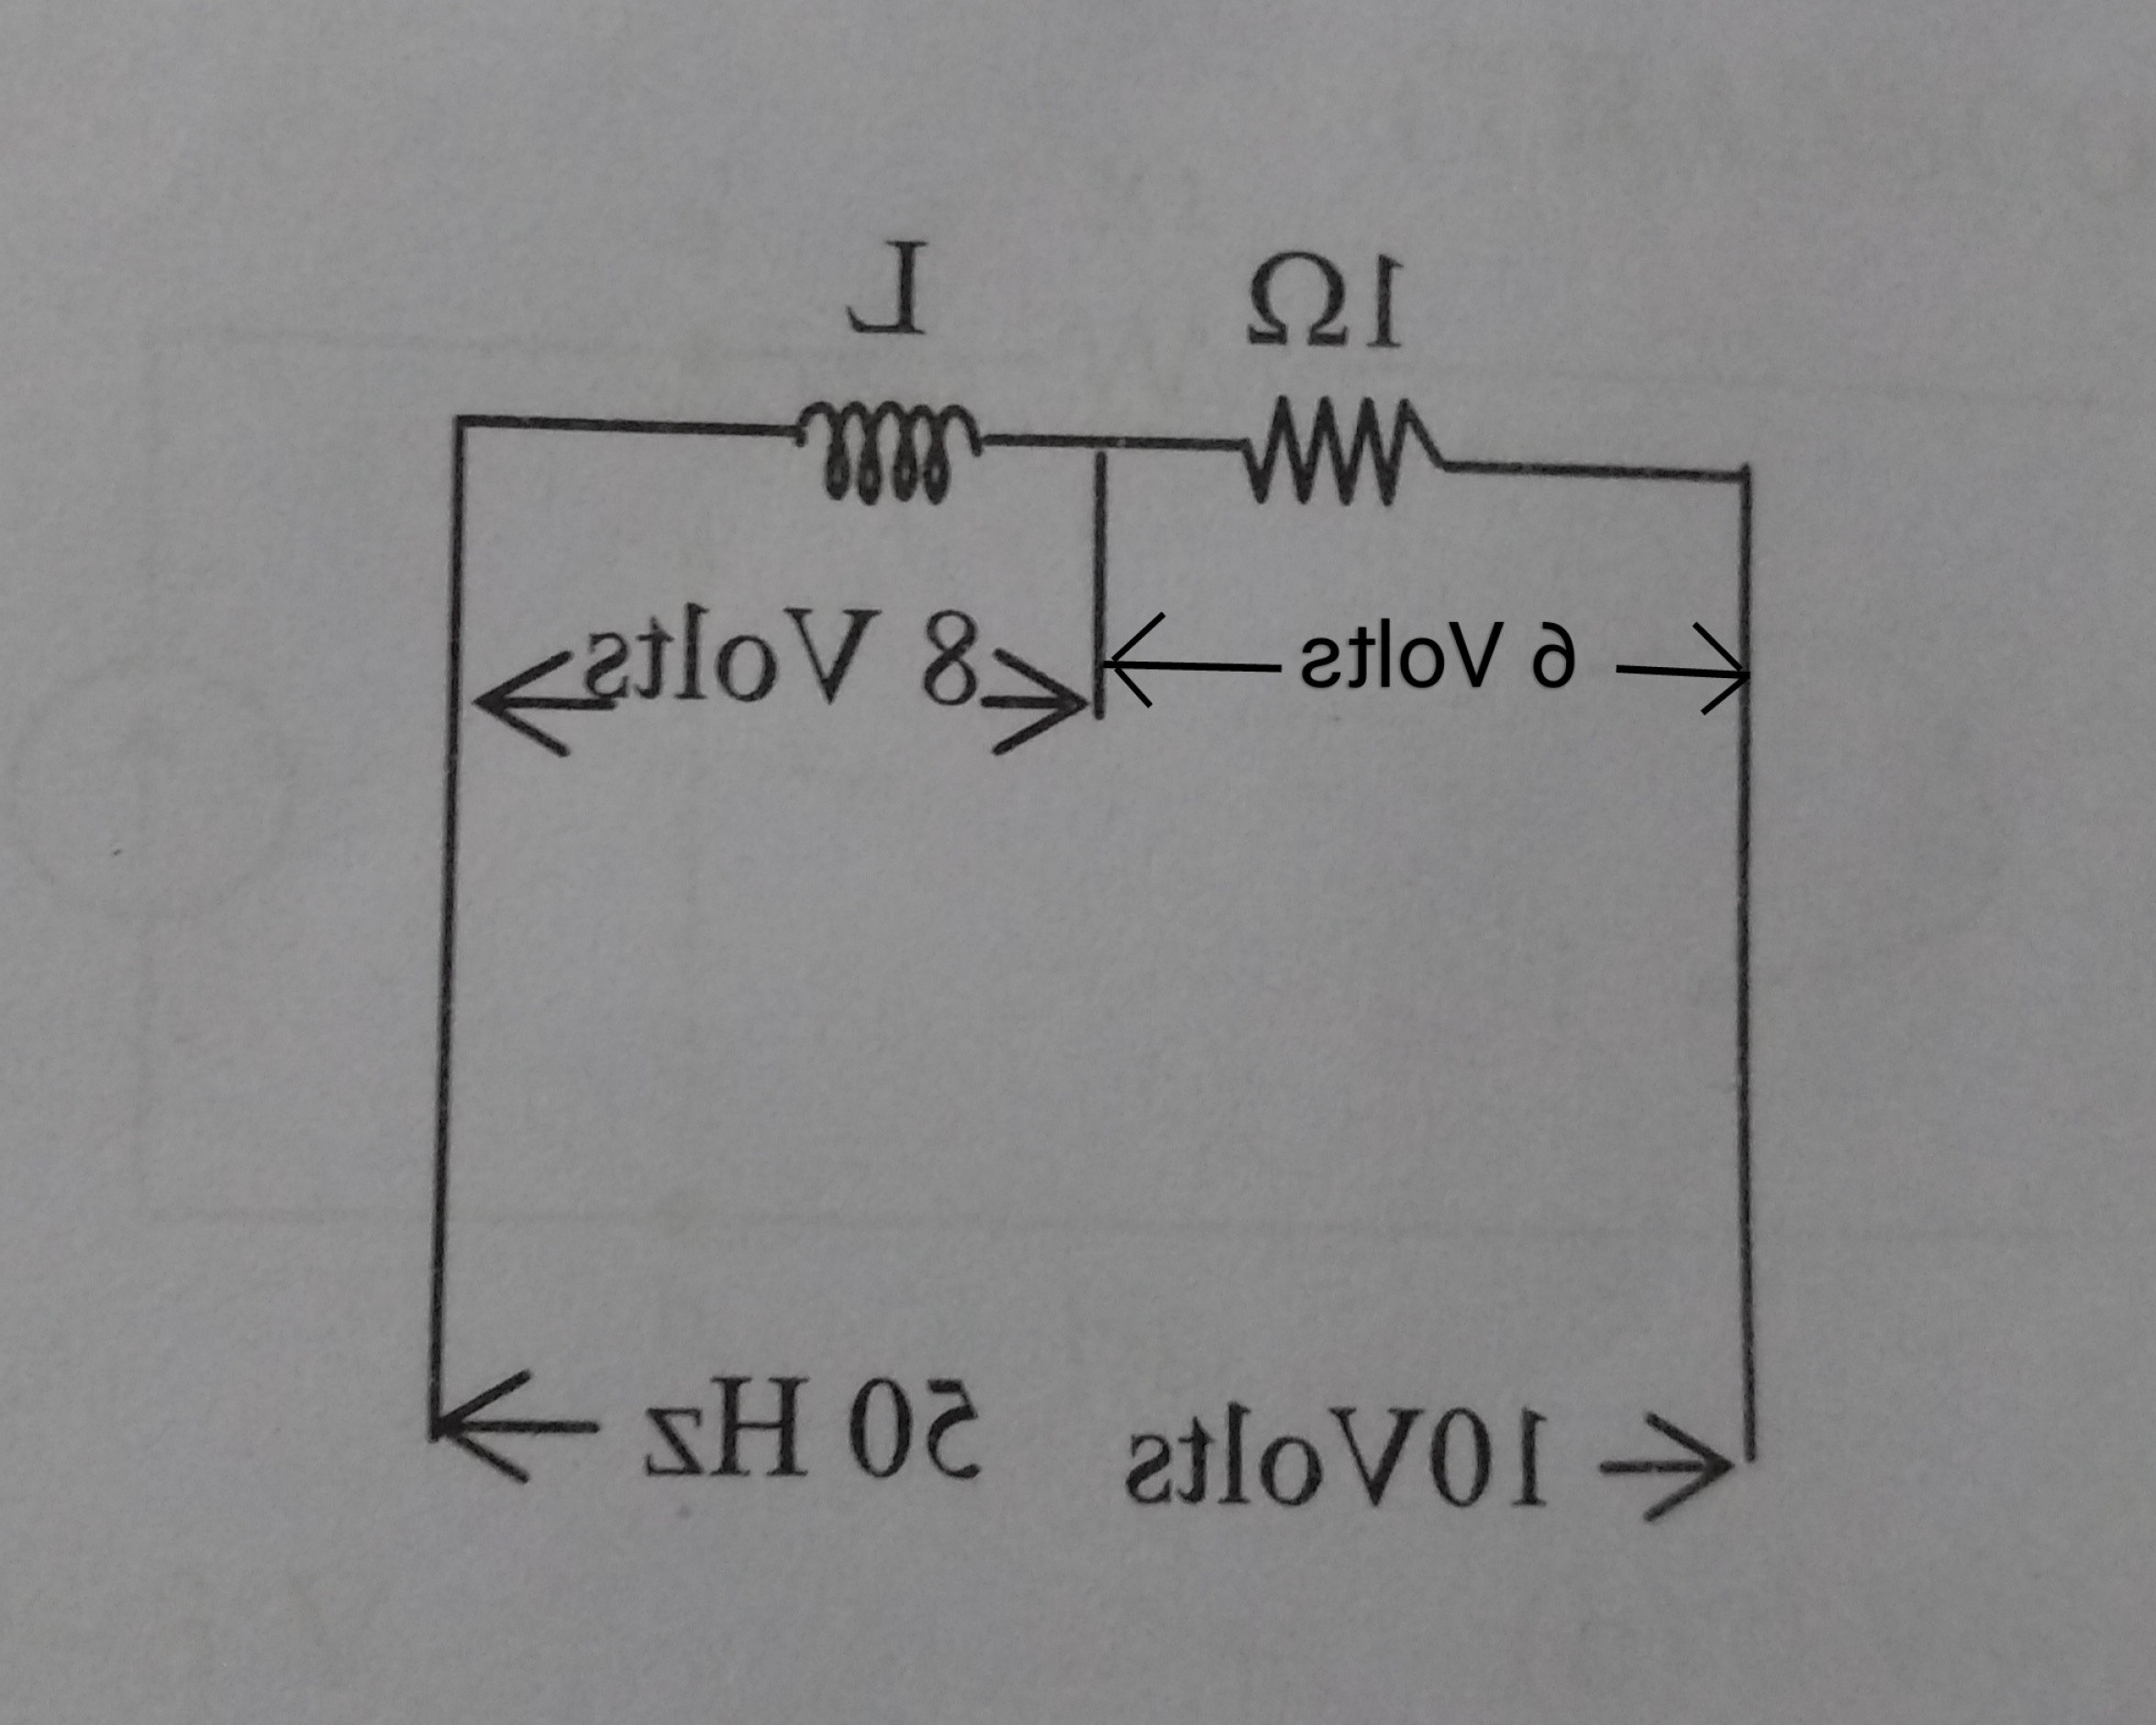 Reactance Vector Diagrams: Voltage Drops Are Greater Than Source Voltage How Is It Possible